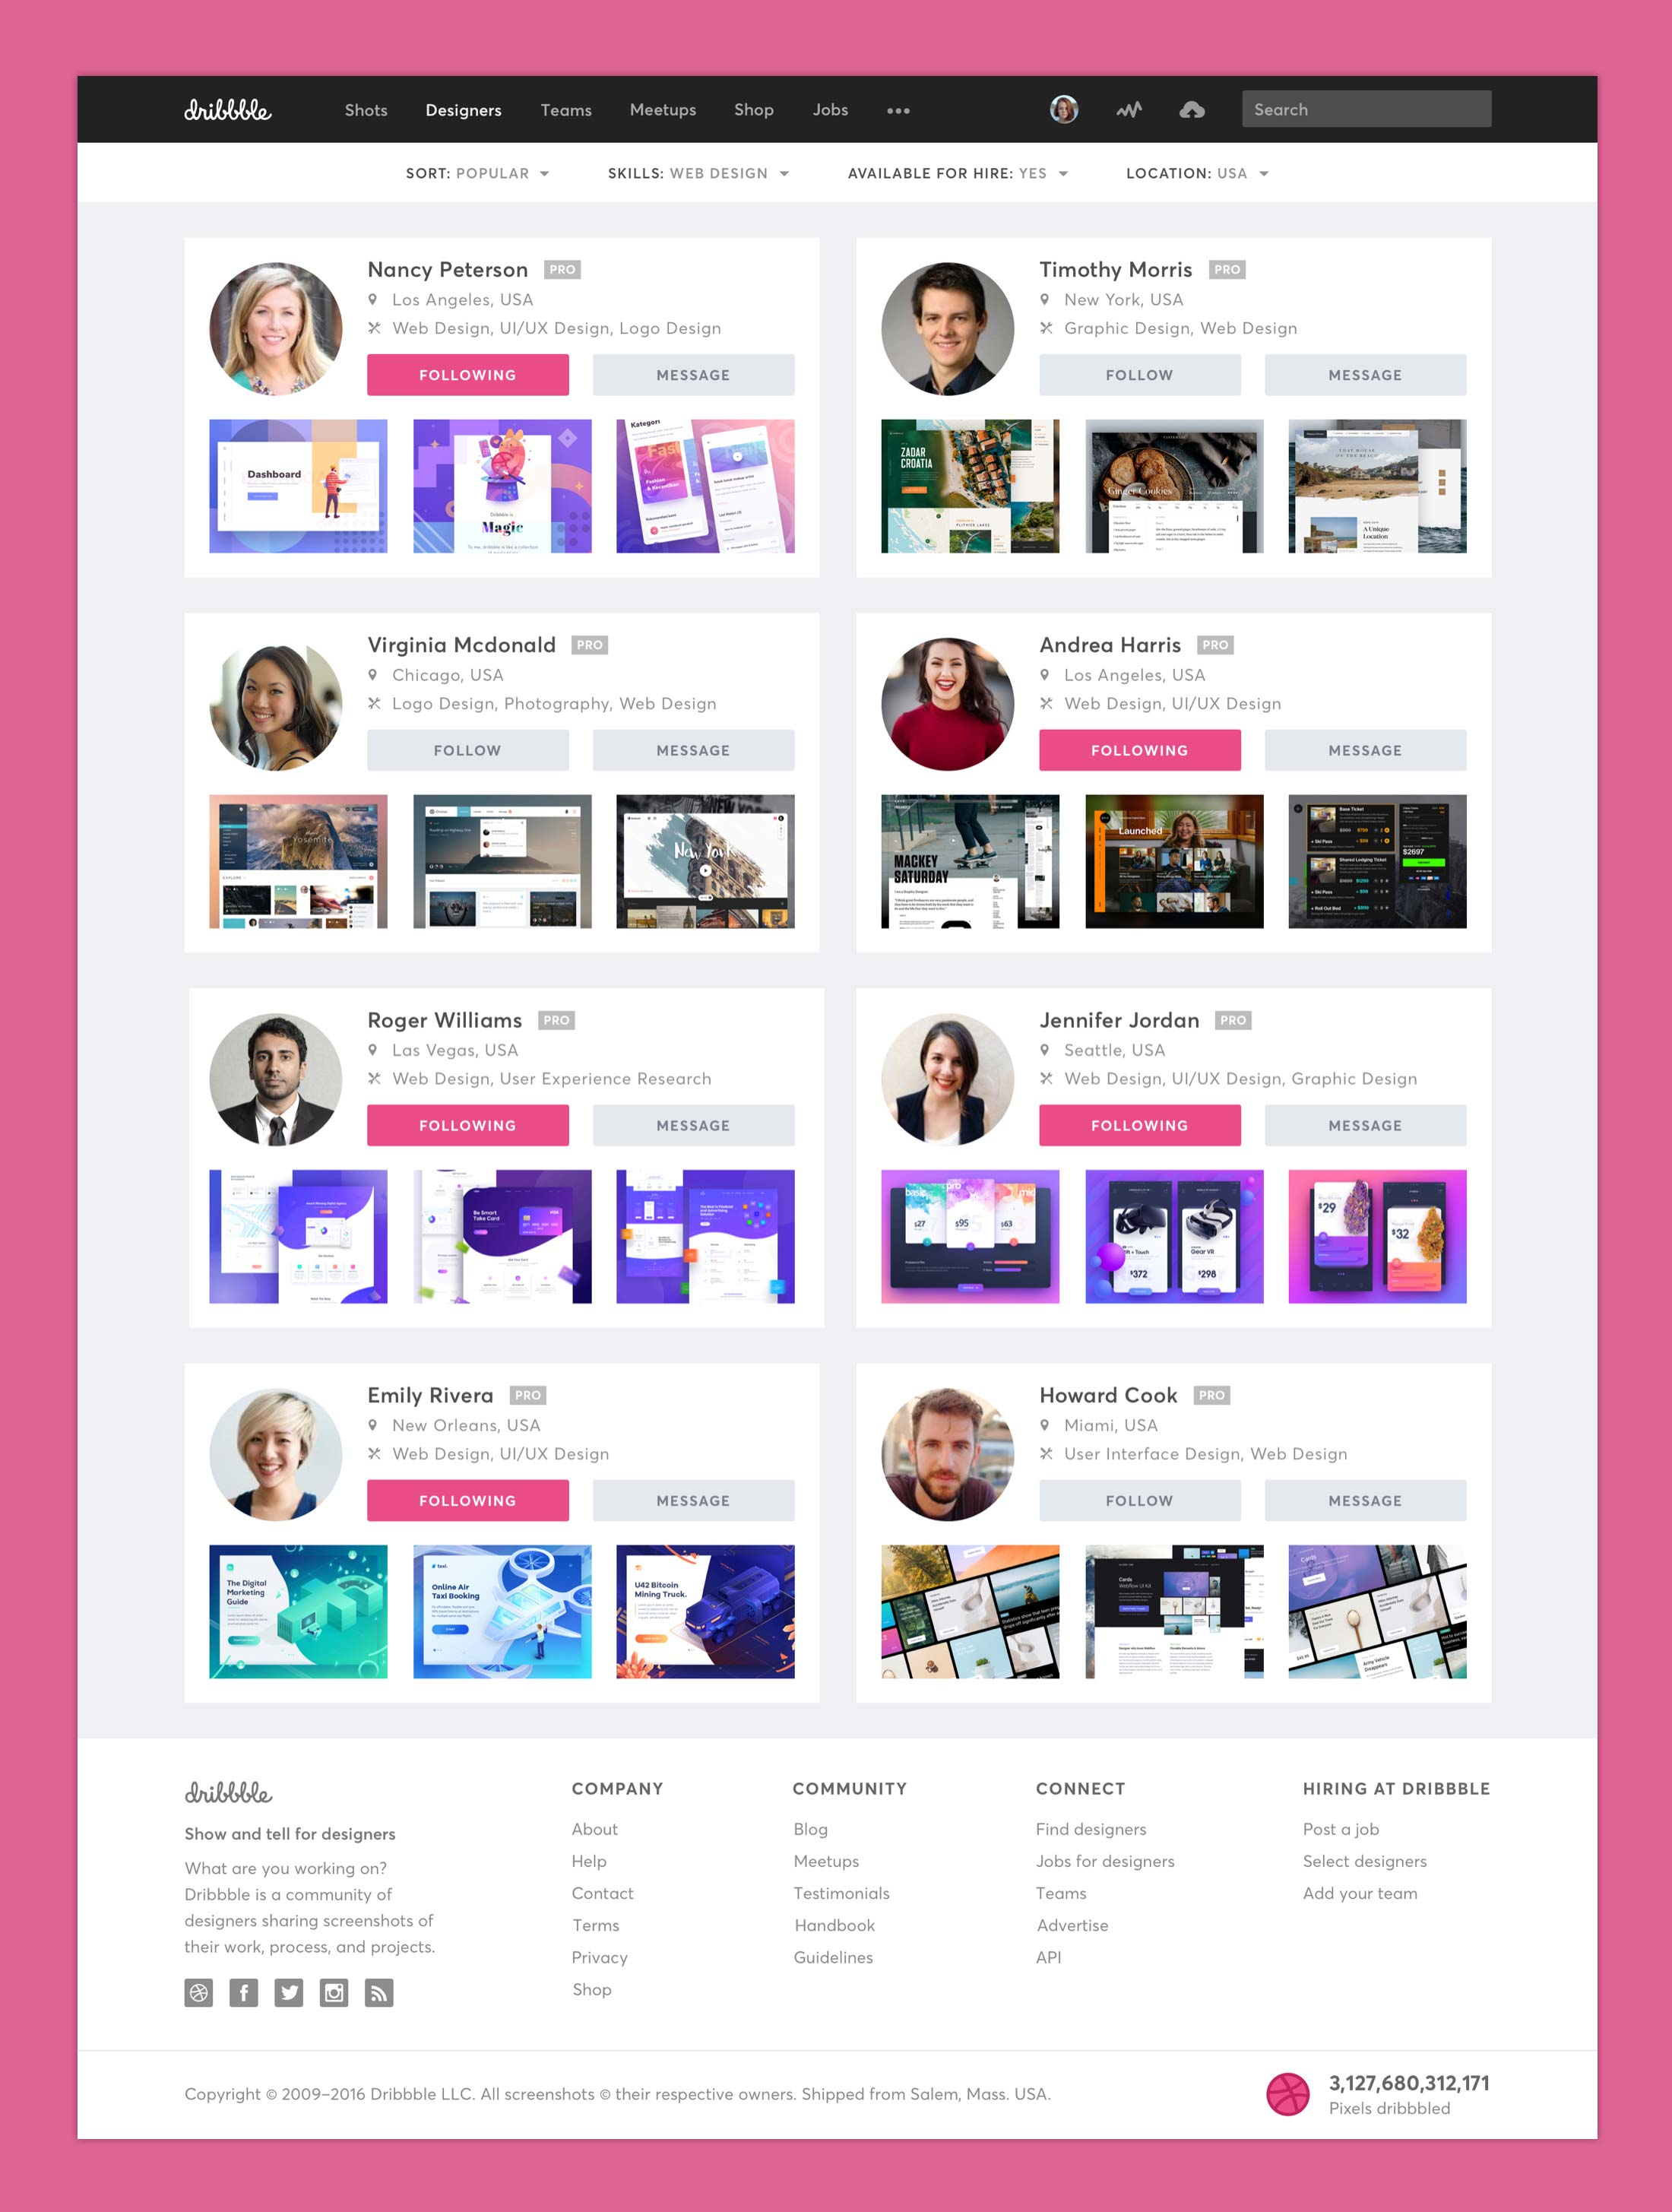 Dribbble Redesign - Designers Page